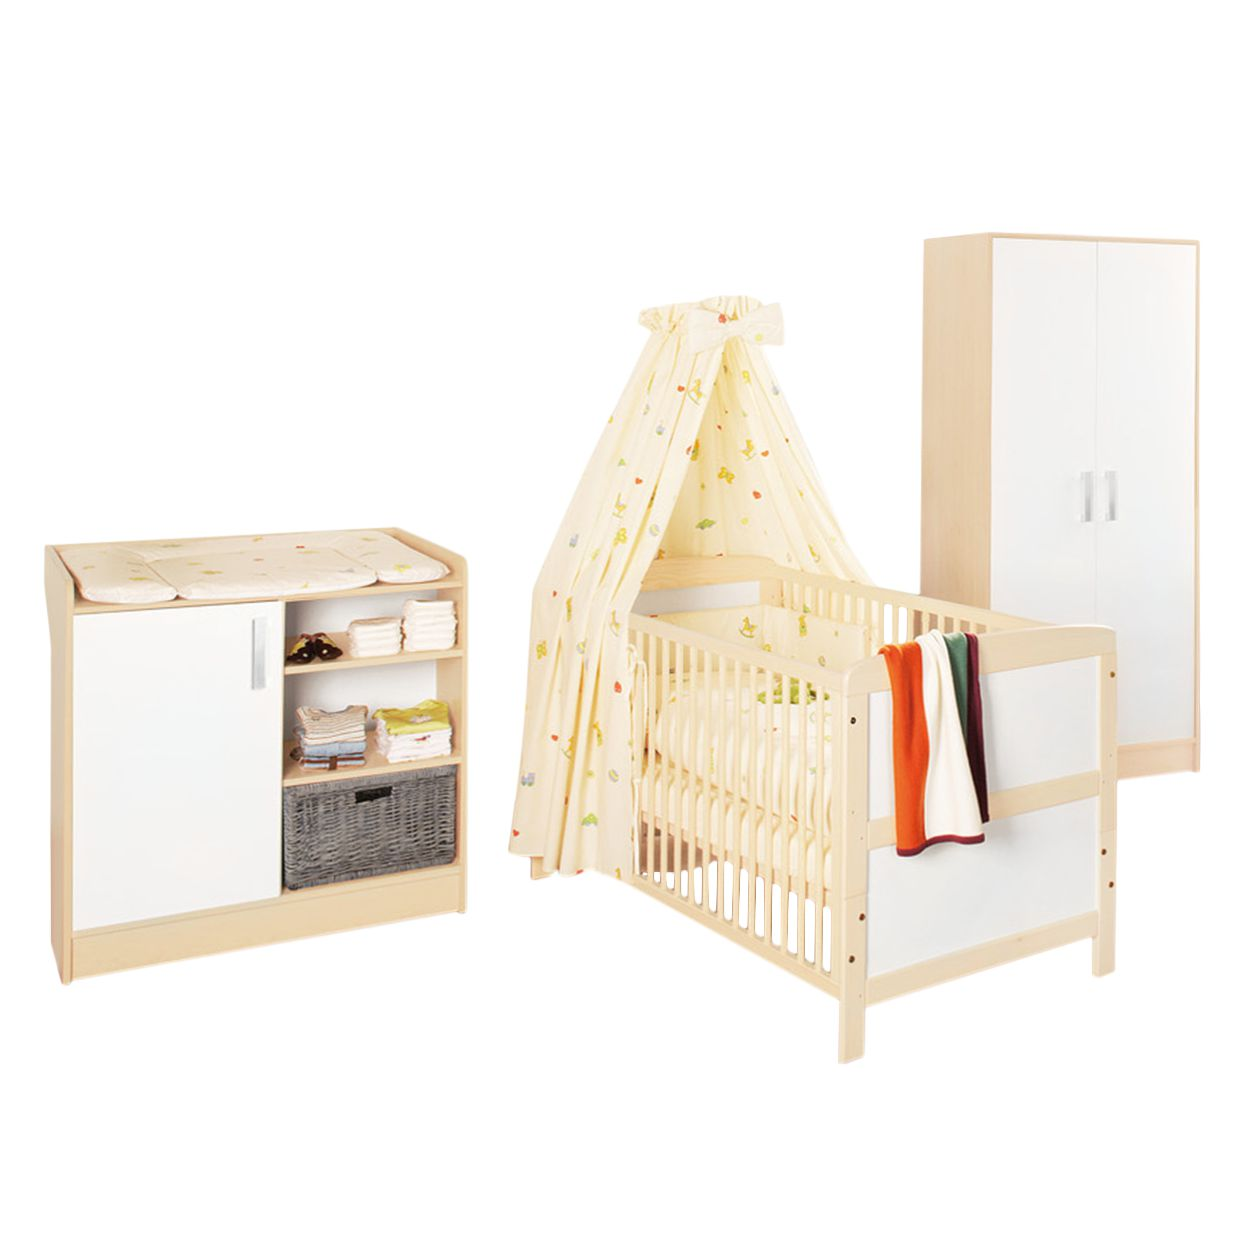 Set de chambre pour bébé Florian - Armoire 2 portes, Pinolino